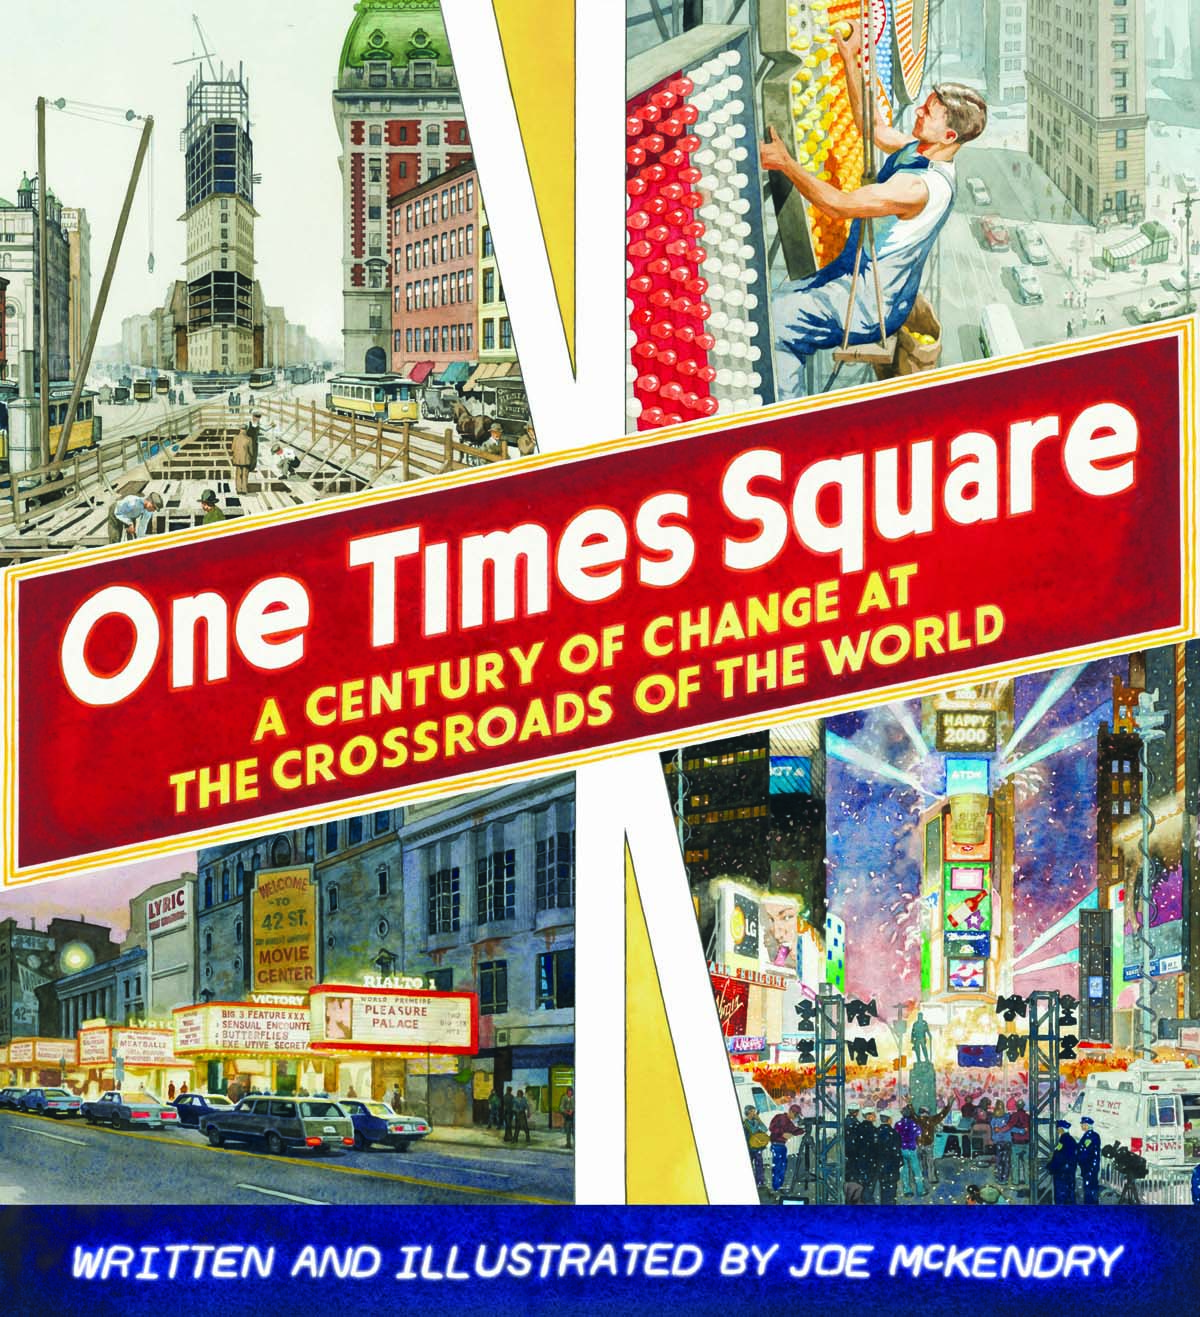 One Times Square by Joe McKendry